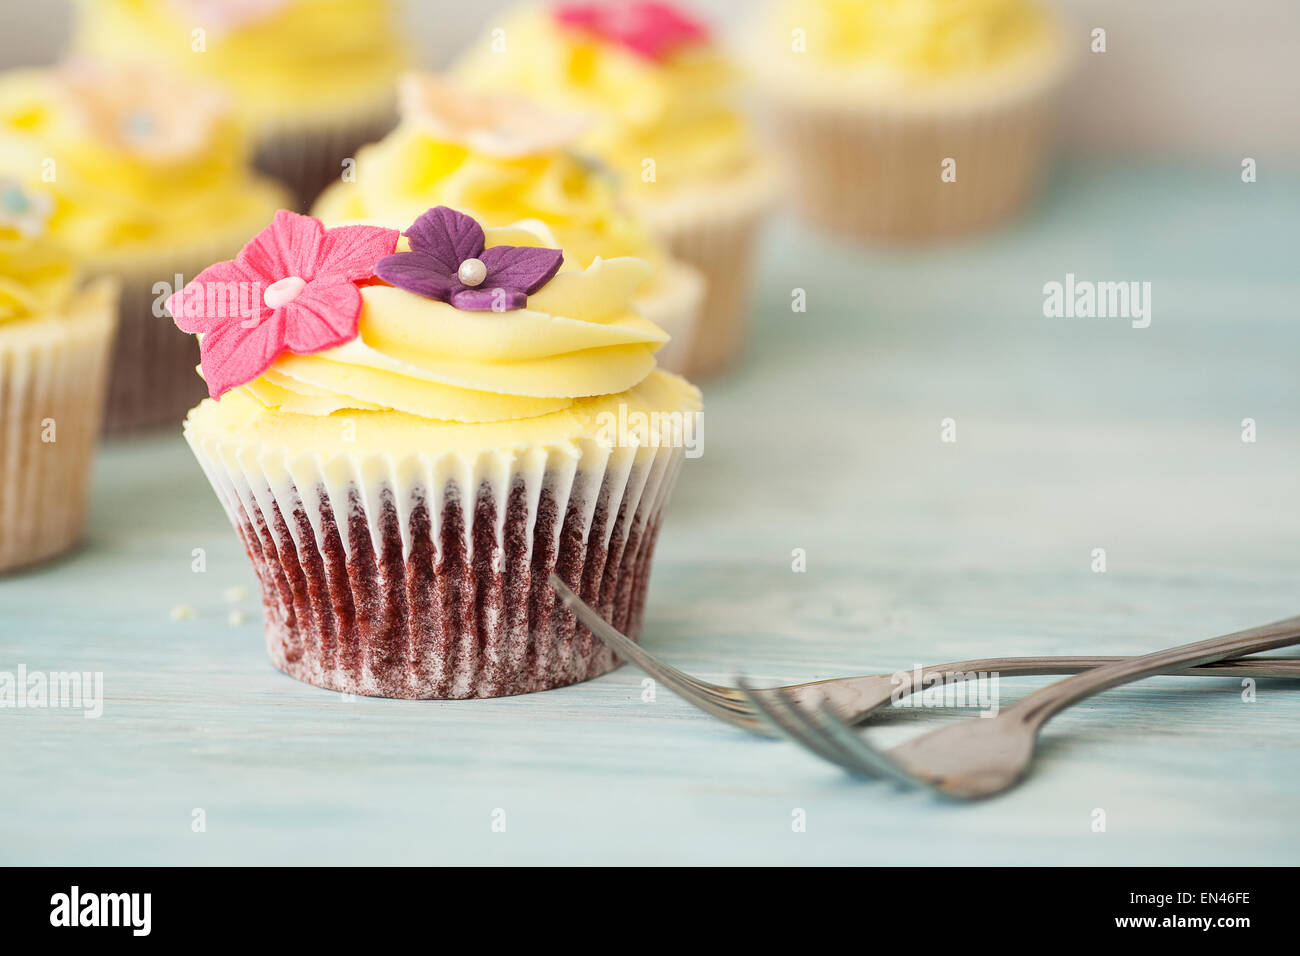 Home Baked Vanilla Cupcakes Buttercream Frosting Stock Photos & Home ...